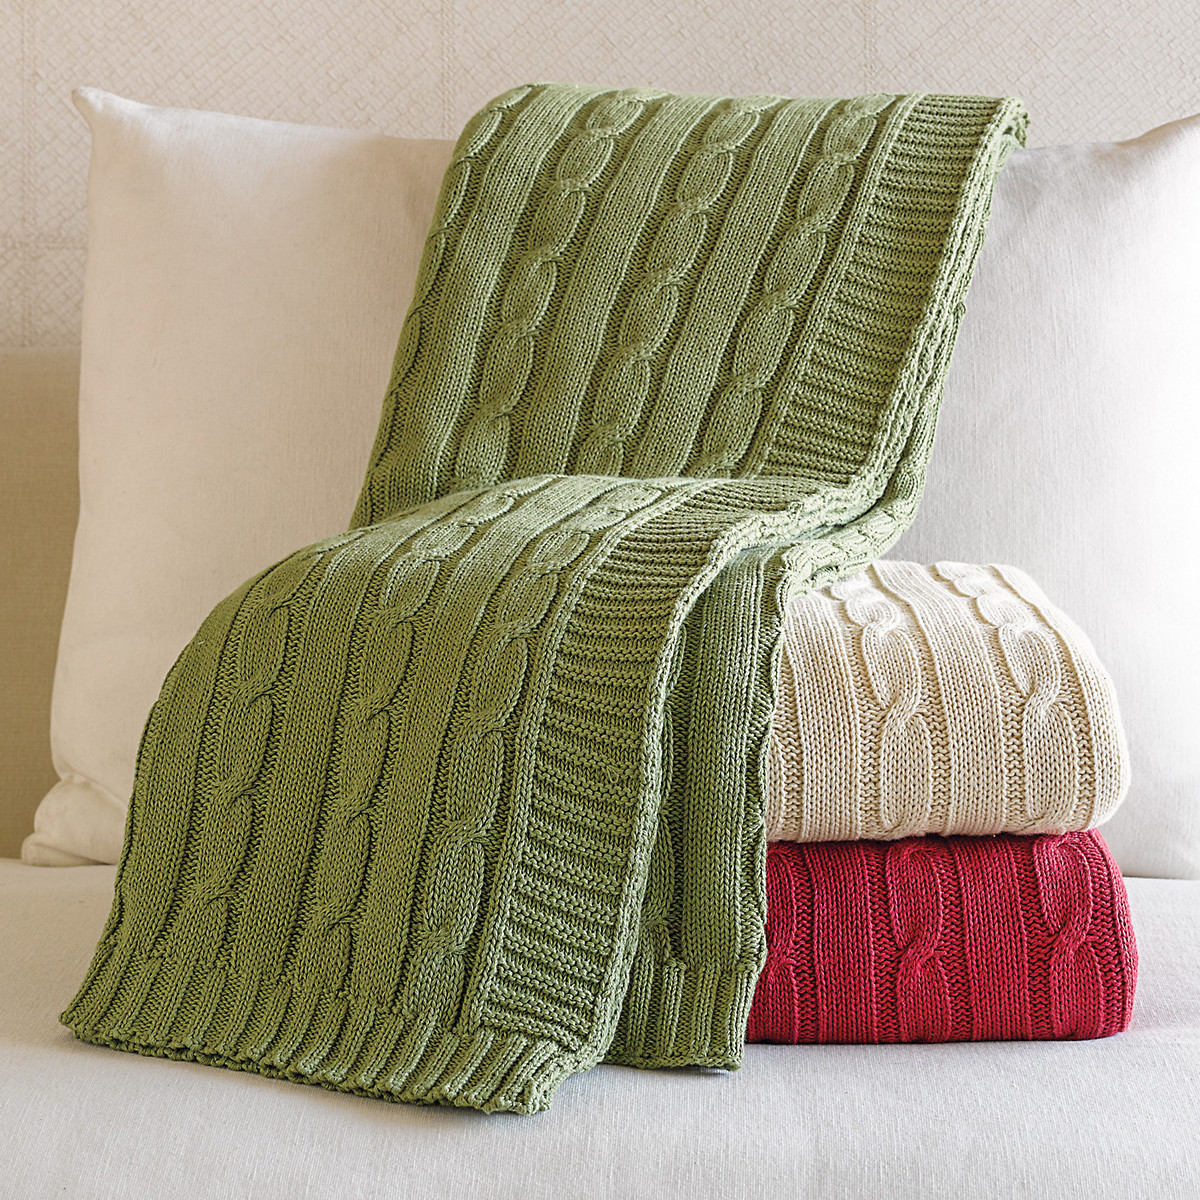 Best Of Cable Knit Cotton Throw Cotton Knit Blanket Of Innovative 42 Models Cotton Knit Blanket